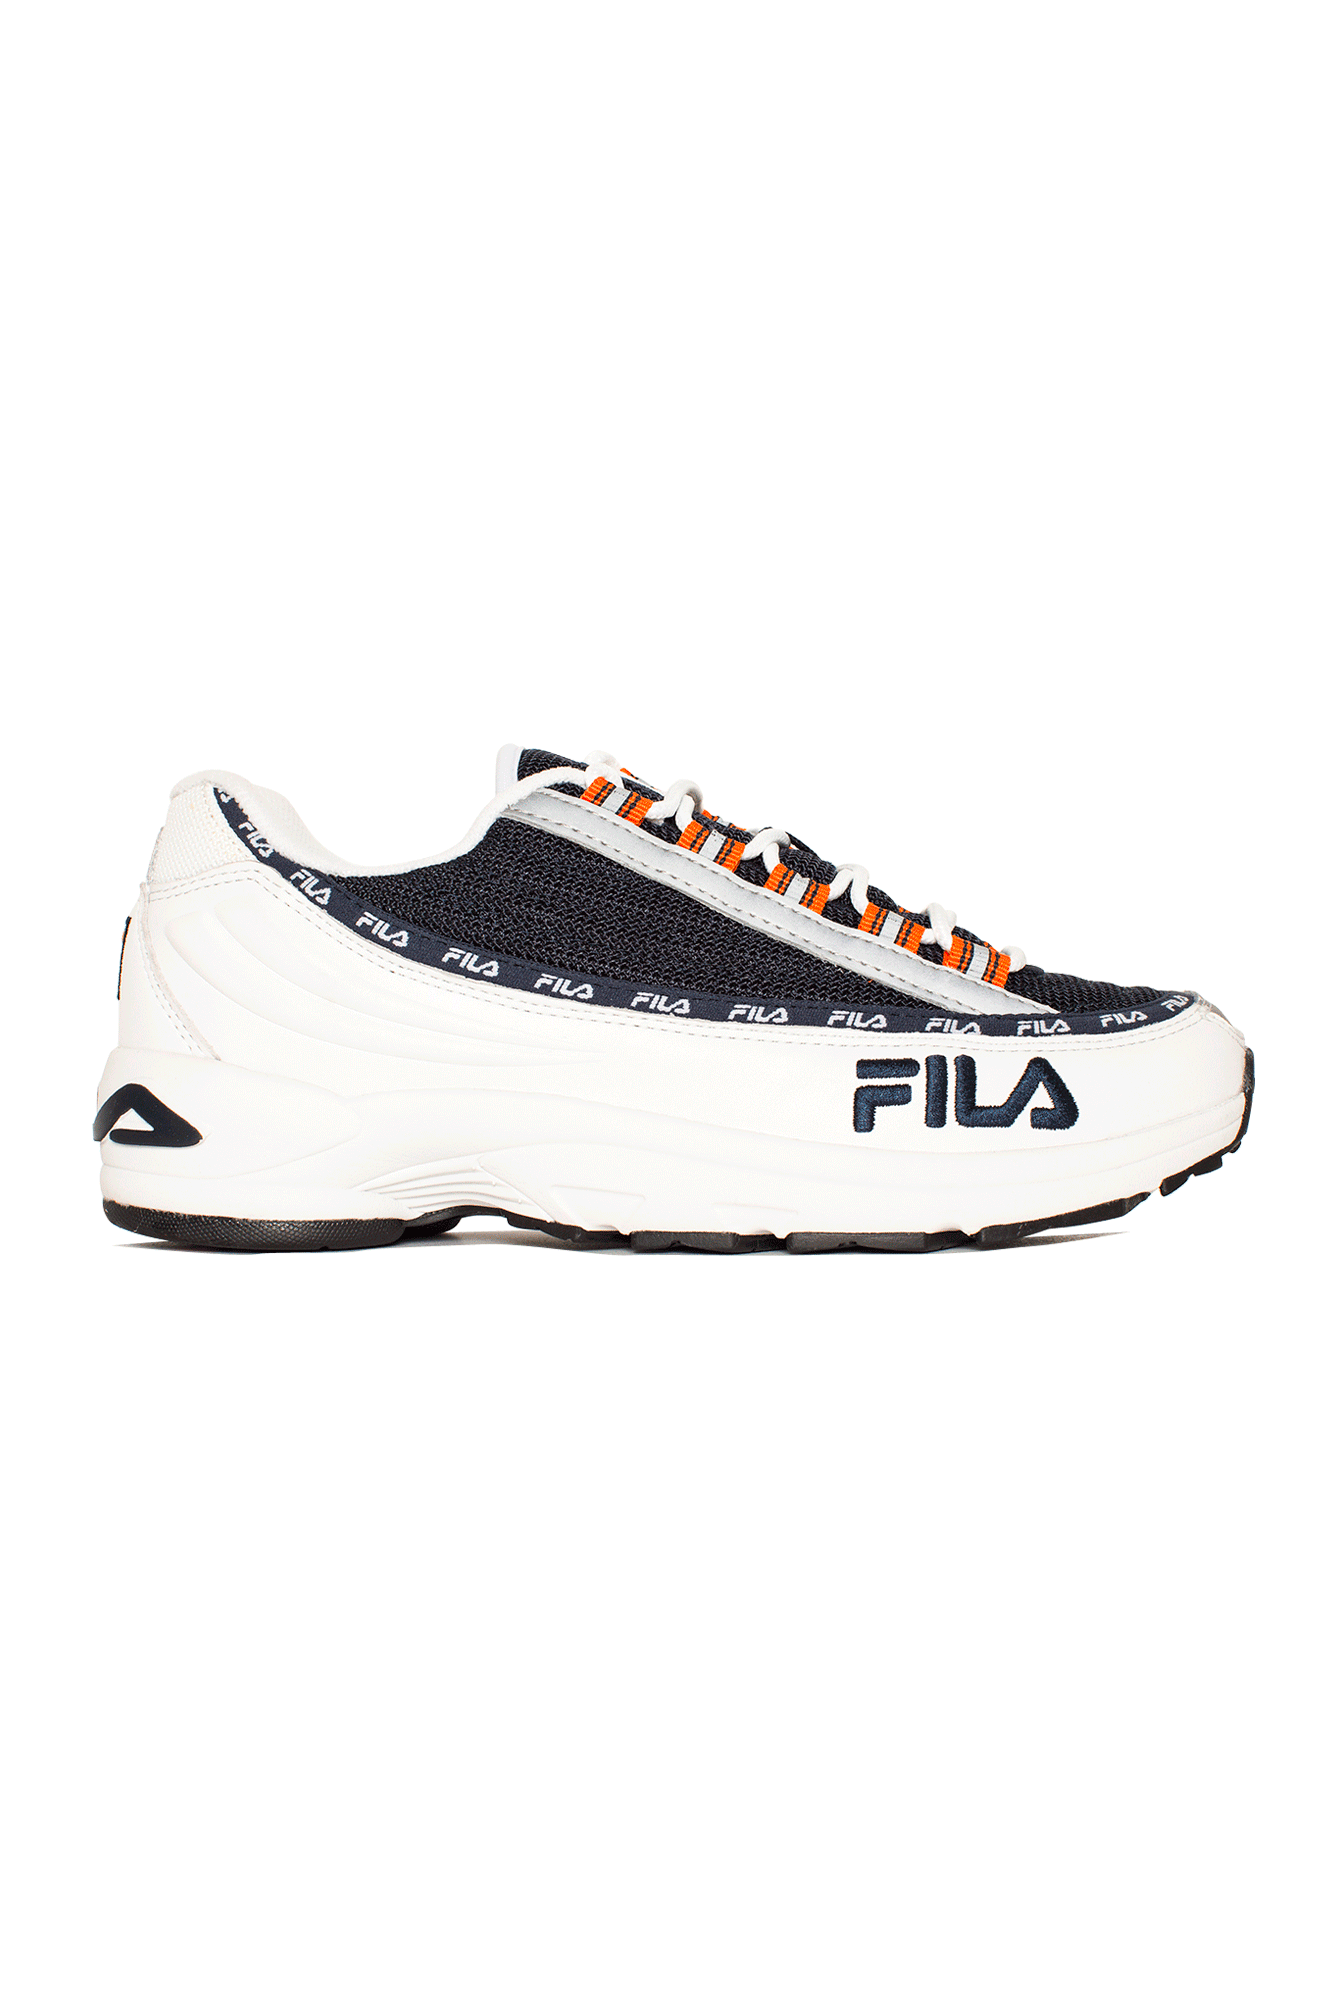 Fila Sneakers Dragster 97 wmn White 10105974D#000#C0006#5,5 - One Block Down